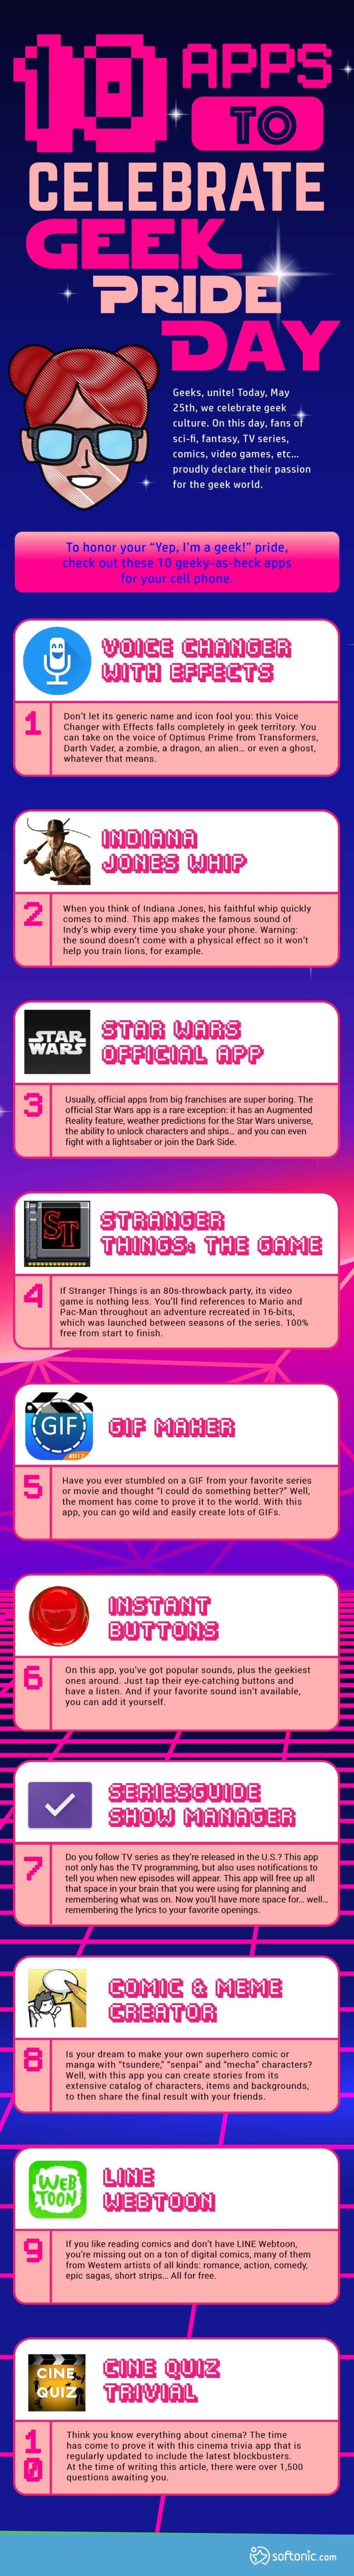 10 apps to celebrate Geek Pride Day